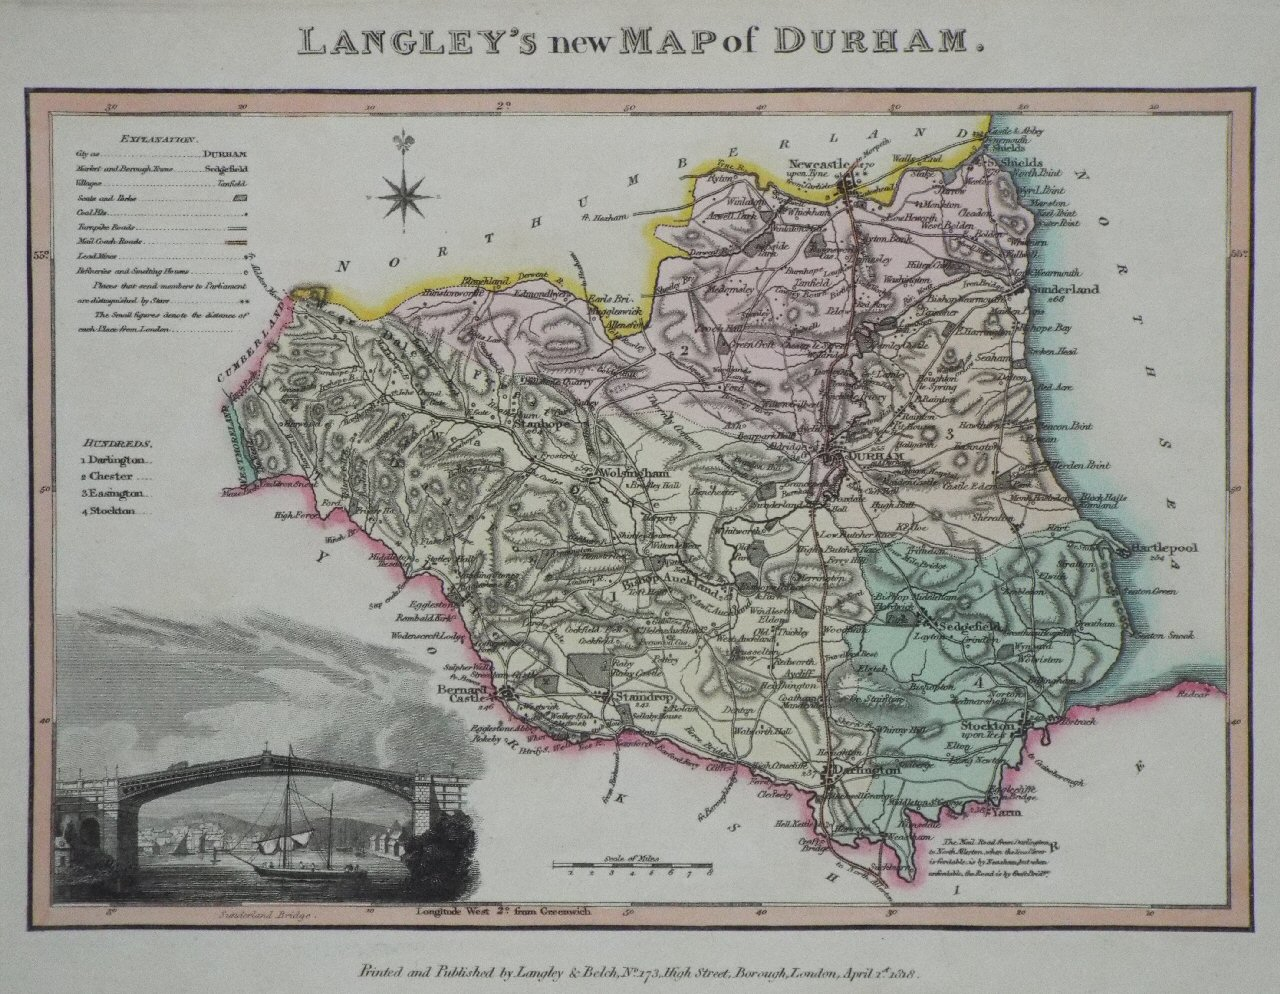 Map of Durham - Langley